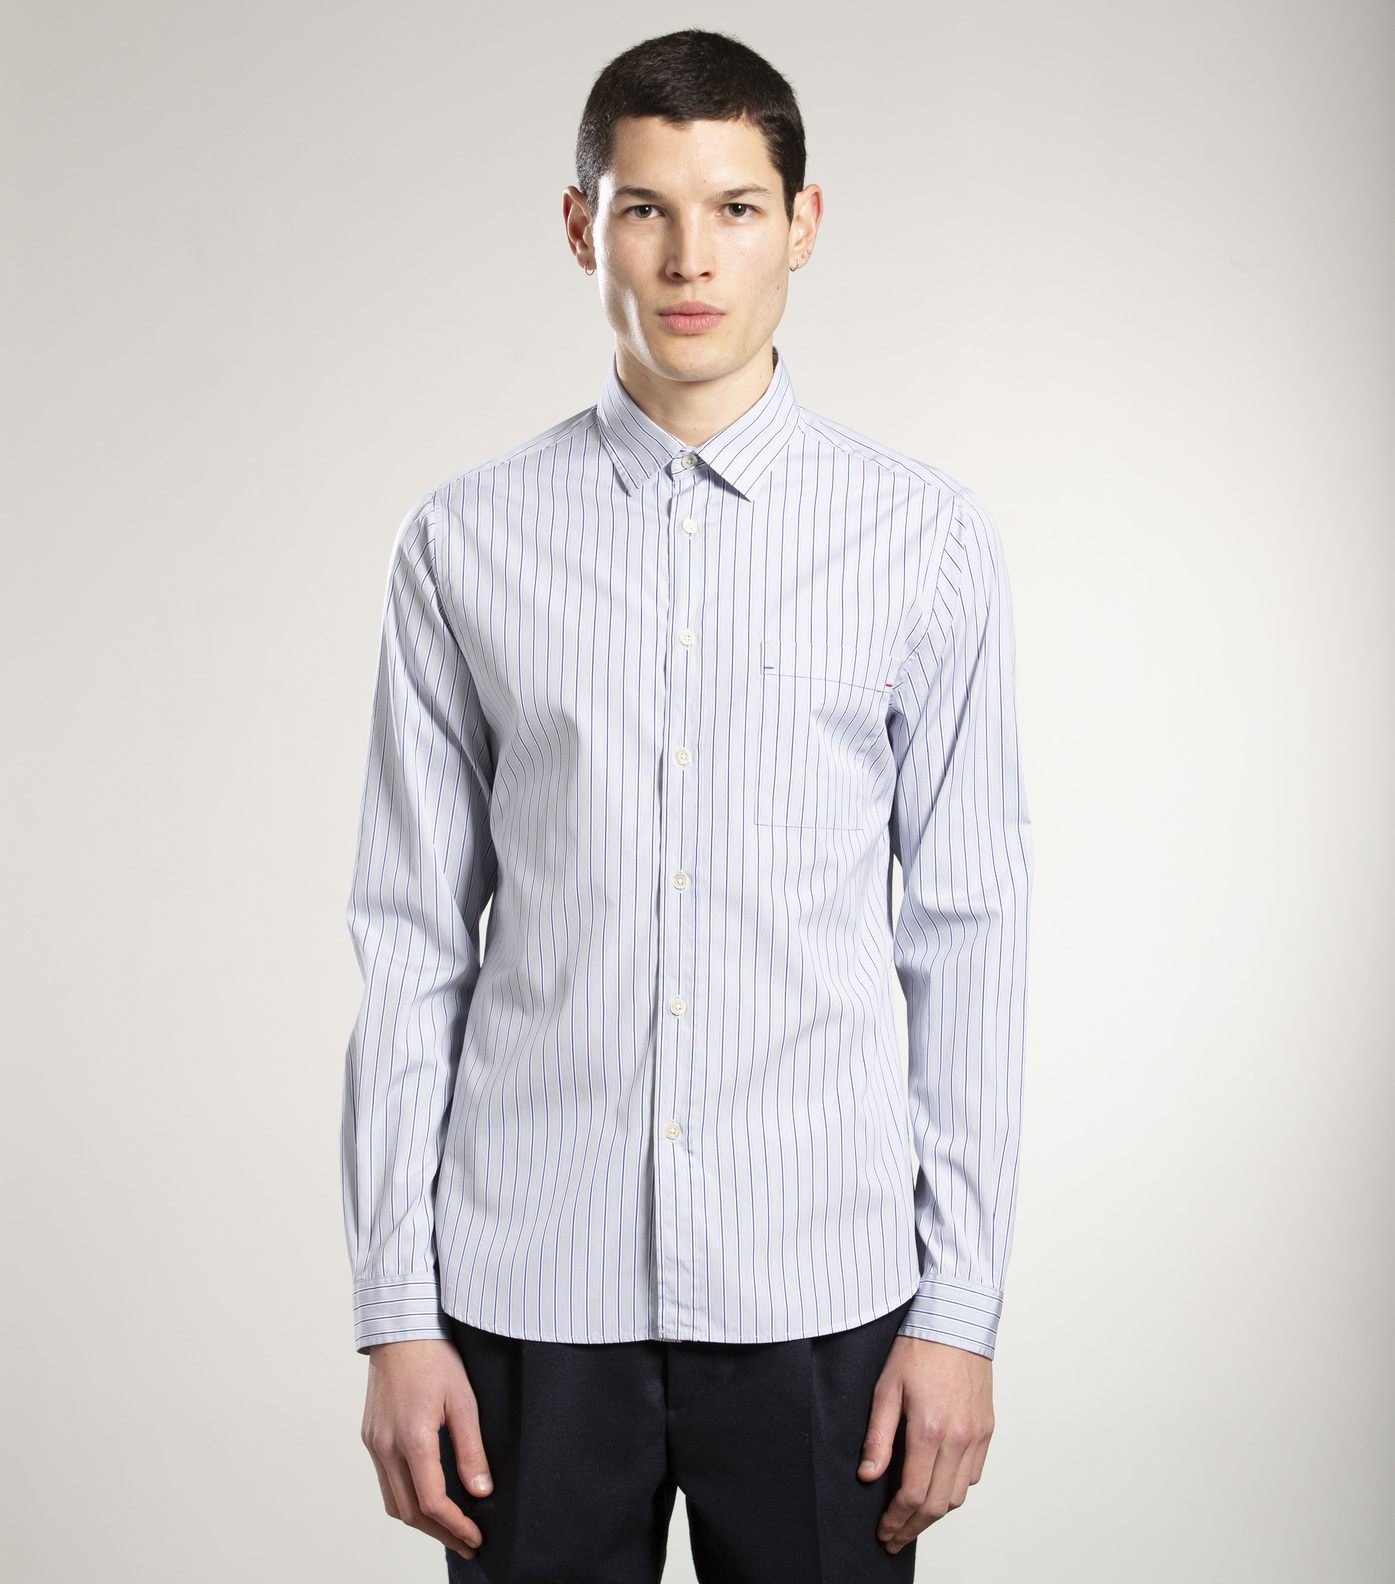 SHIRT ROSSEL - Grey stripes